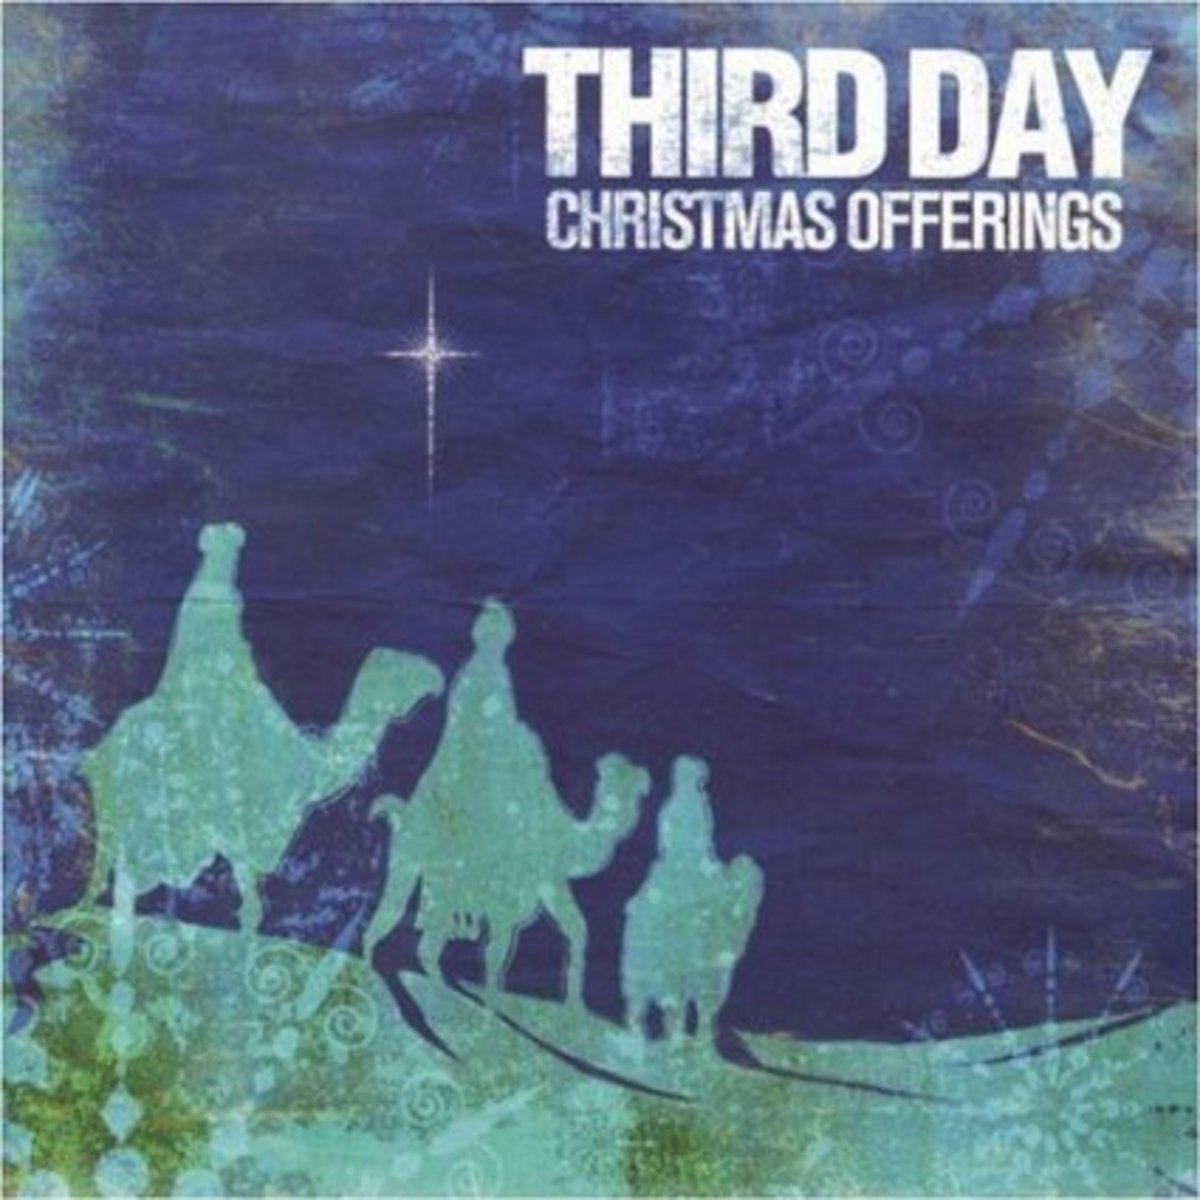 born in bethlehem is a song by third day a contemporary christian rock band from georgia it is track 3 on the bands 2006 album christmas offerings